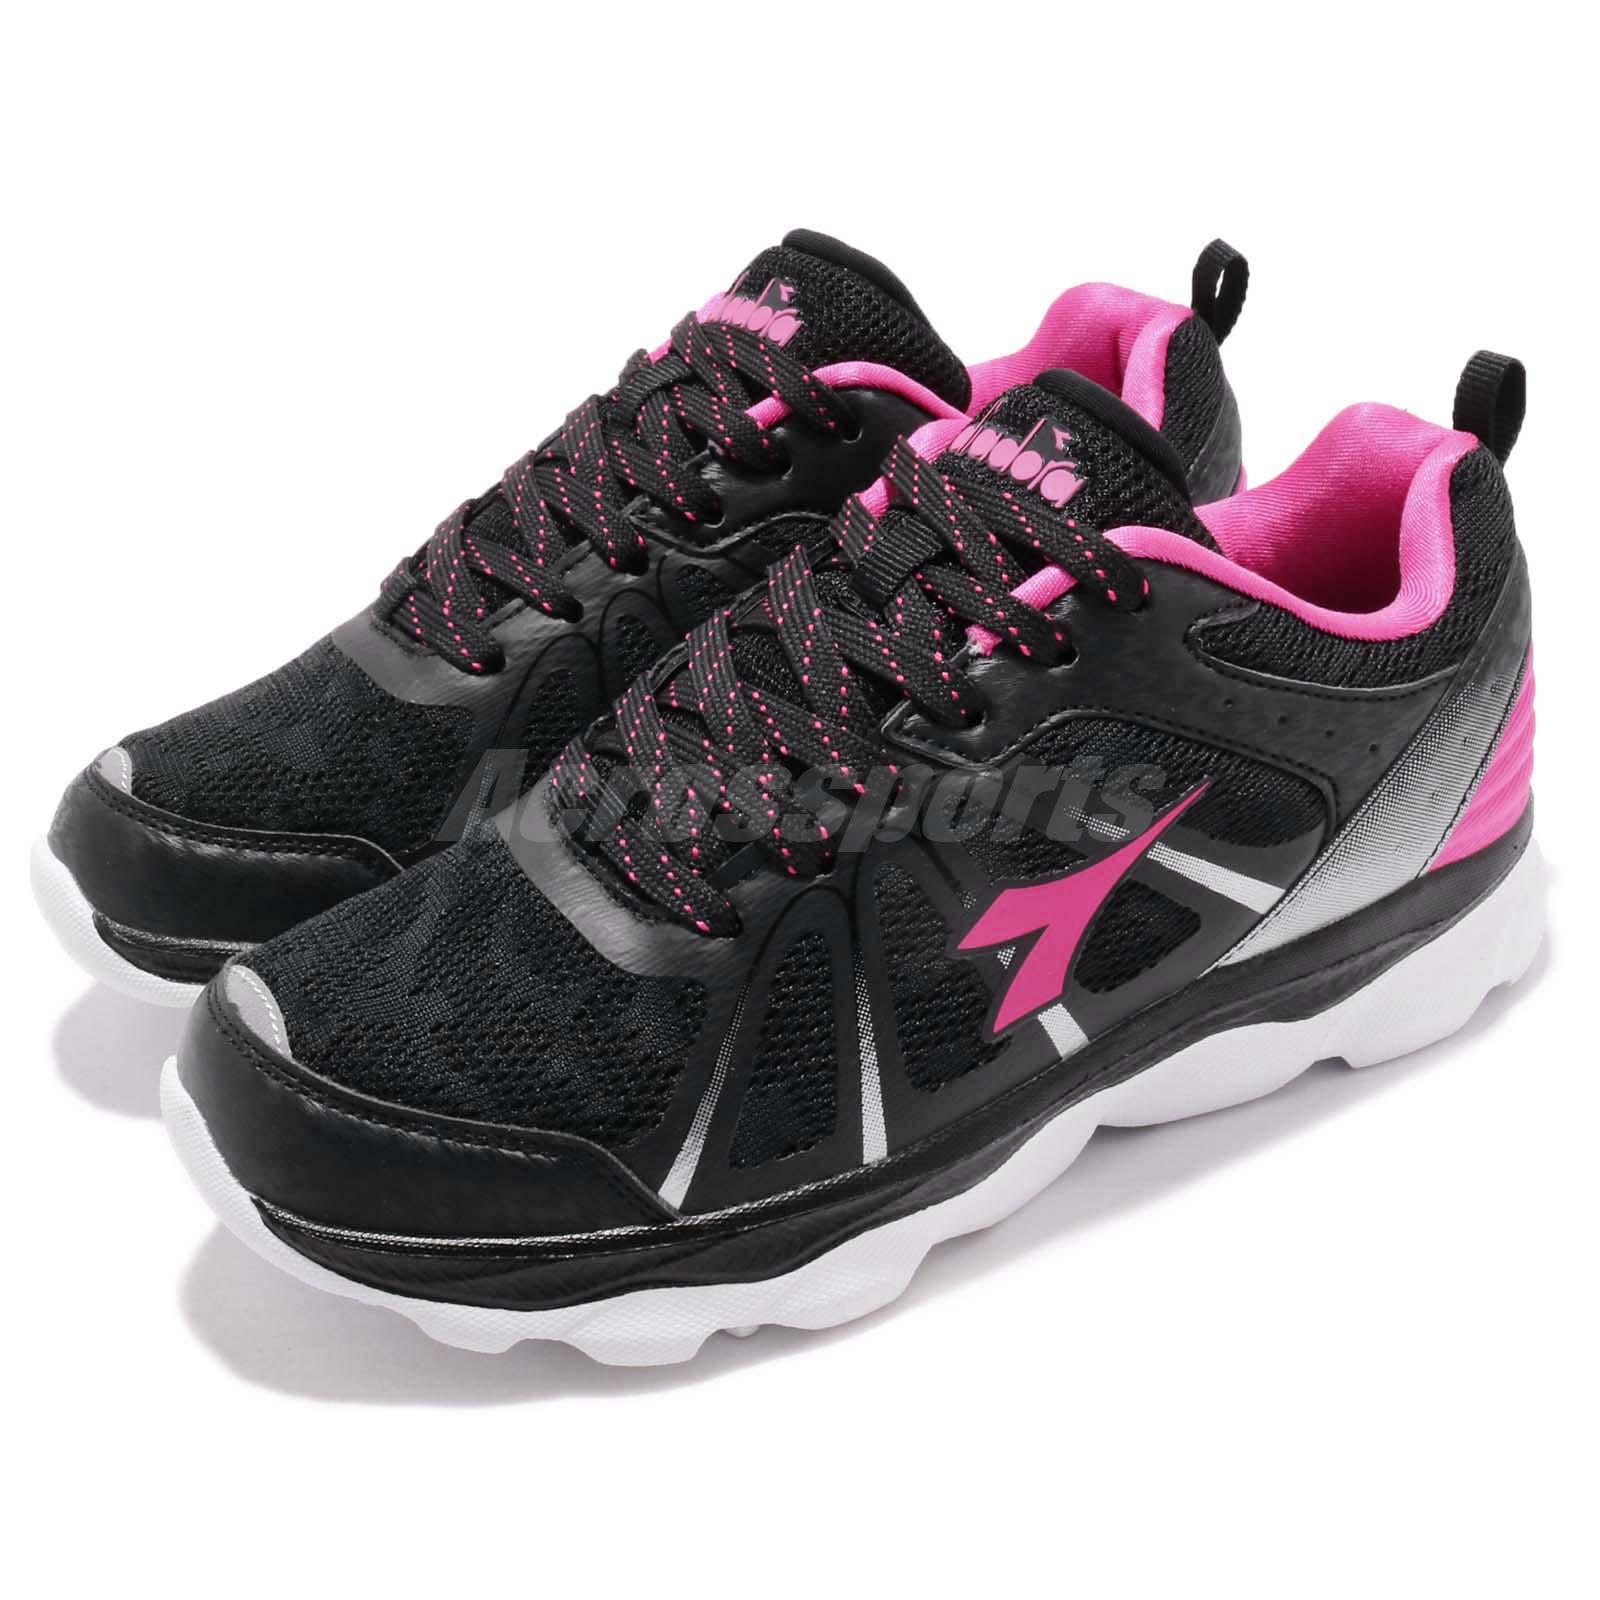 bc070d5a Details about Diadora DA8AWJ6672 Black Pink White Women Running Walking  Casual Shoes Sneakers